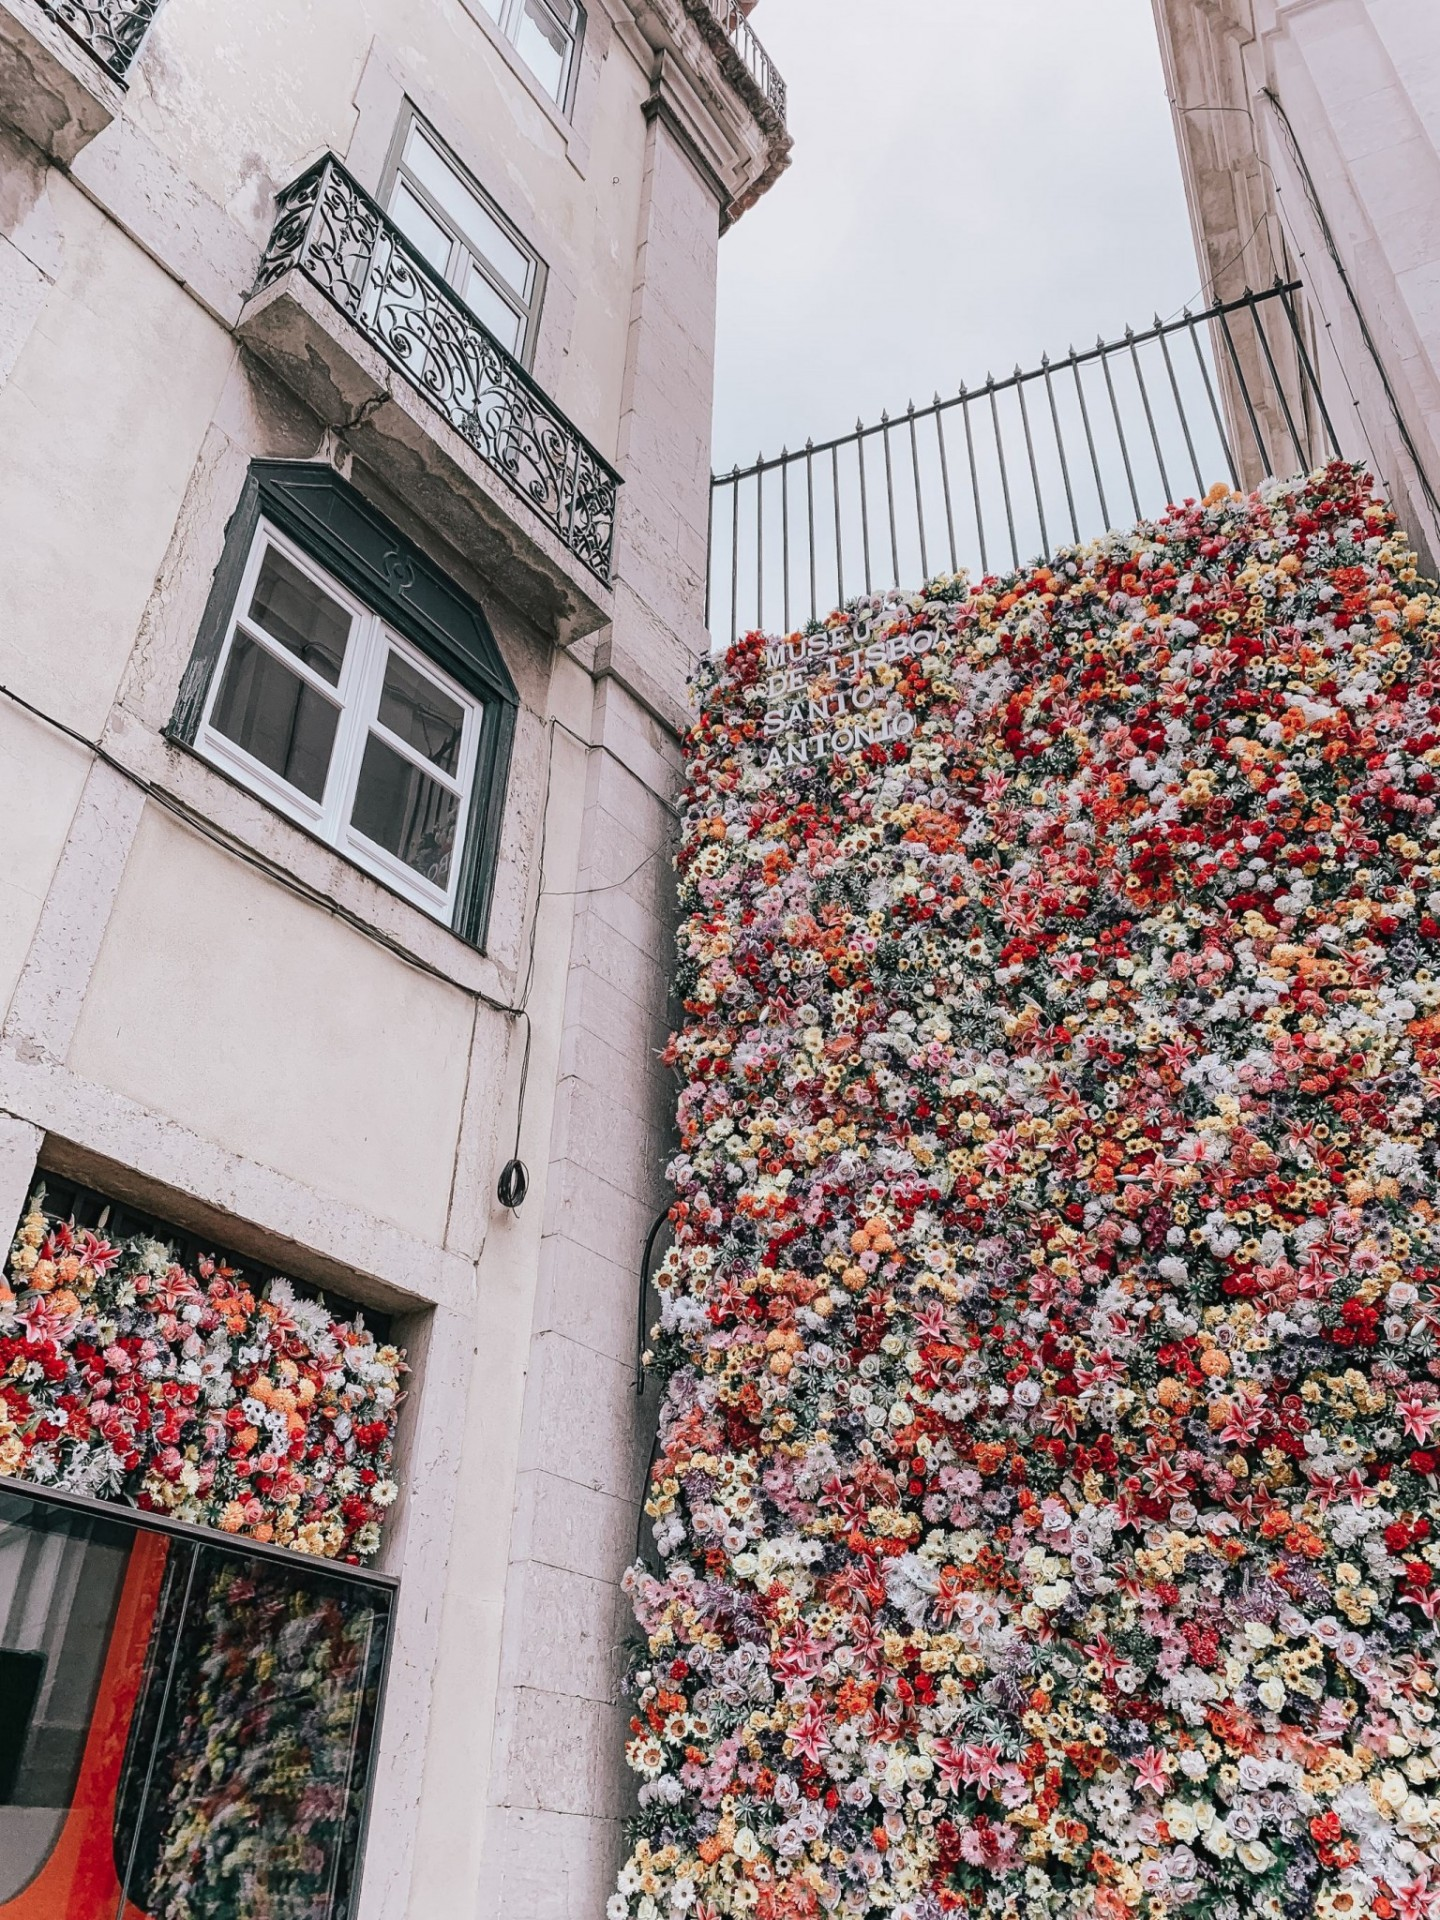 Lifestyle blogger Mollie Moore shares a Lisbon travel guide | Visiting Portugal: The Ultimate Lisbon Travel Guide & the Best Things to Do by popular London travel blogger, Mollie Moore: image of a flower wall in Lisbon, Portugal.